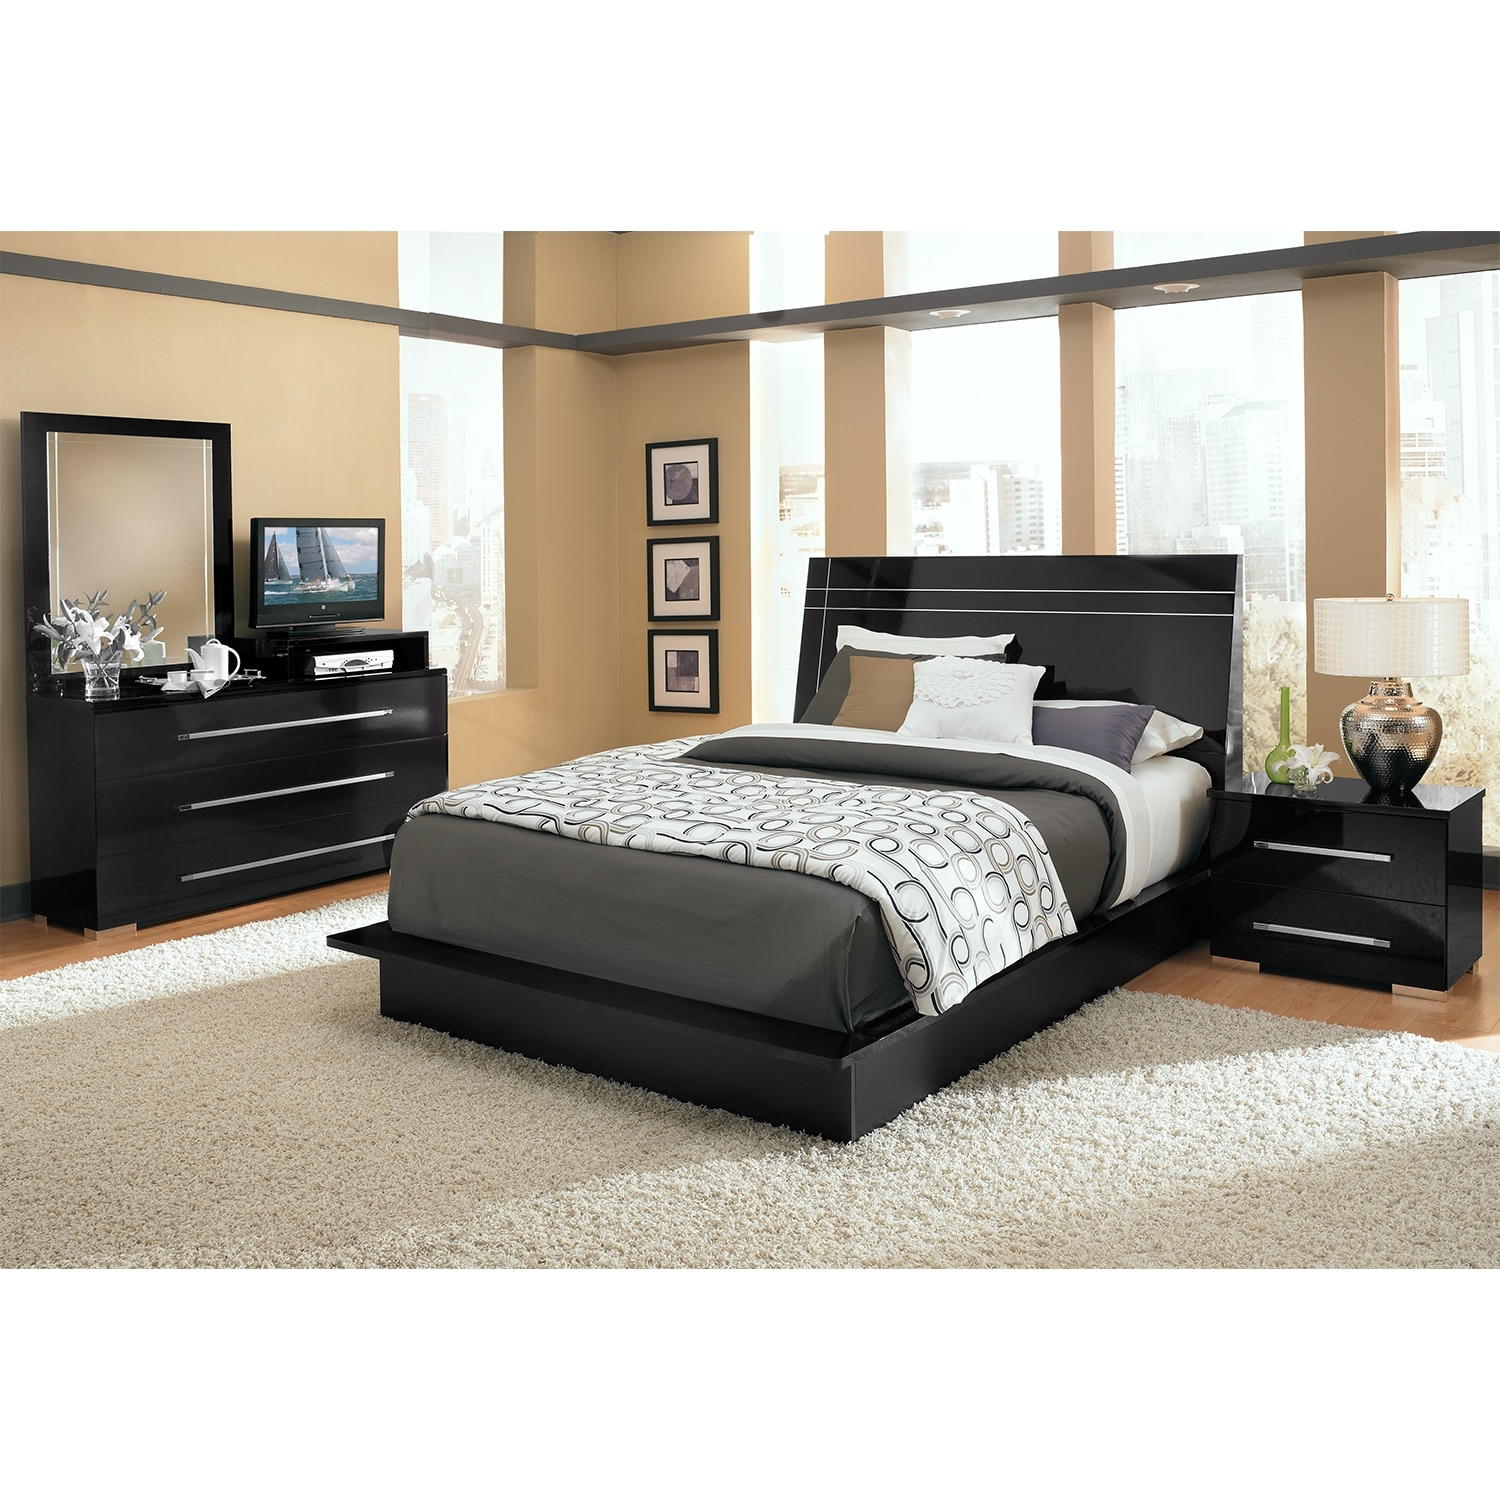 Shop bedroom packages american signature furniture - Cheap bedroom furniture packages ...